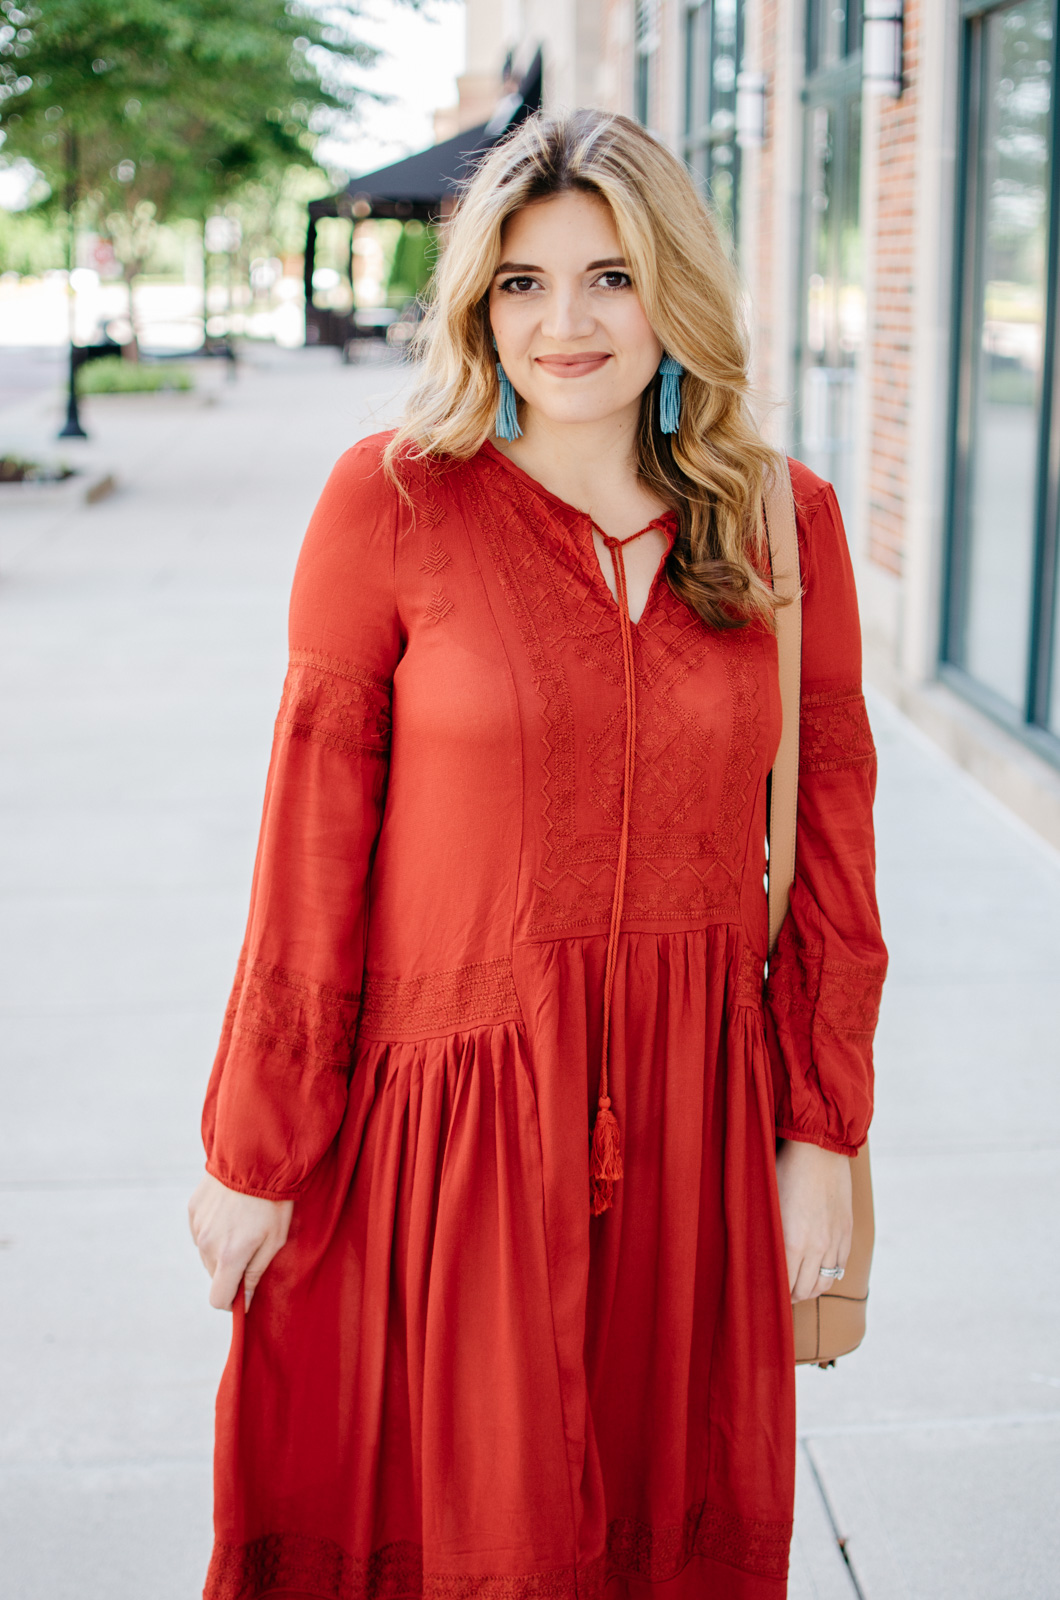 cute boho outfit summer - maxi dress outfit | For more cute casual outfit ideas, head to bylaurenm.com!